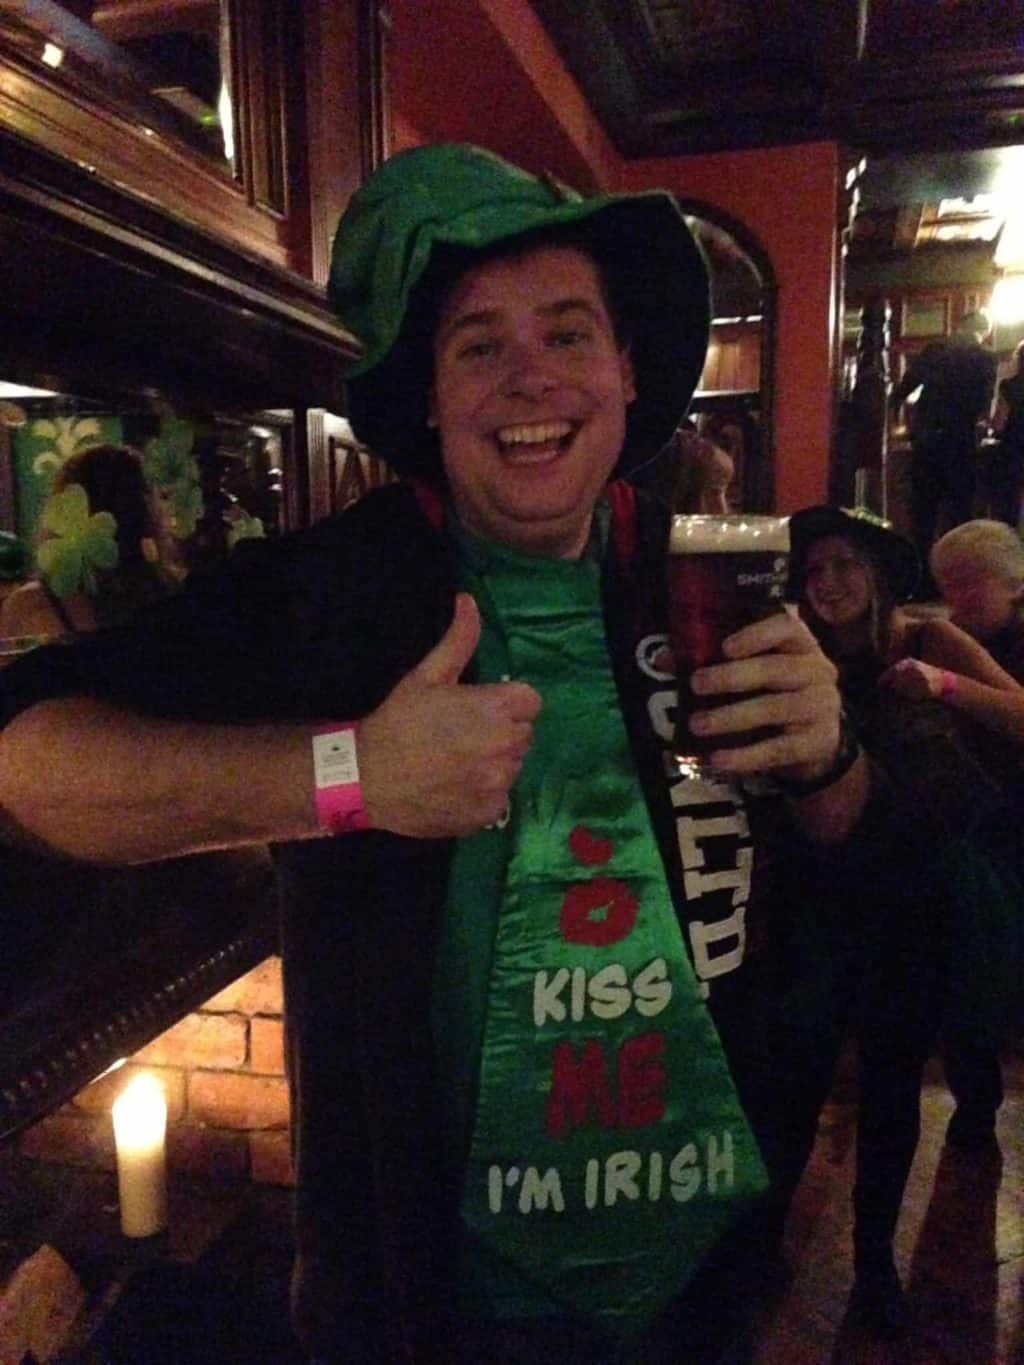 if nothing else, he definitely had a good time on St. Patrick's Day